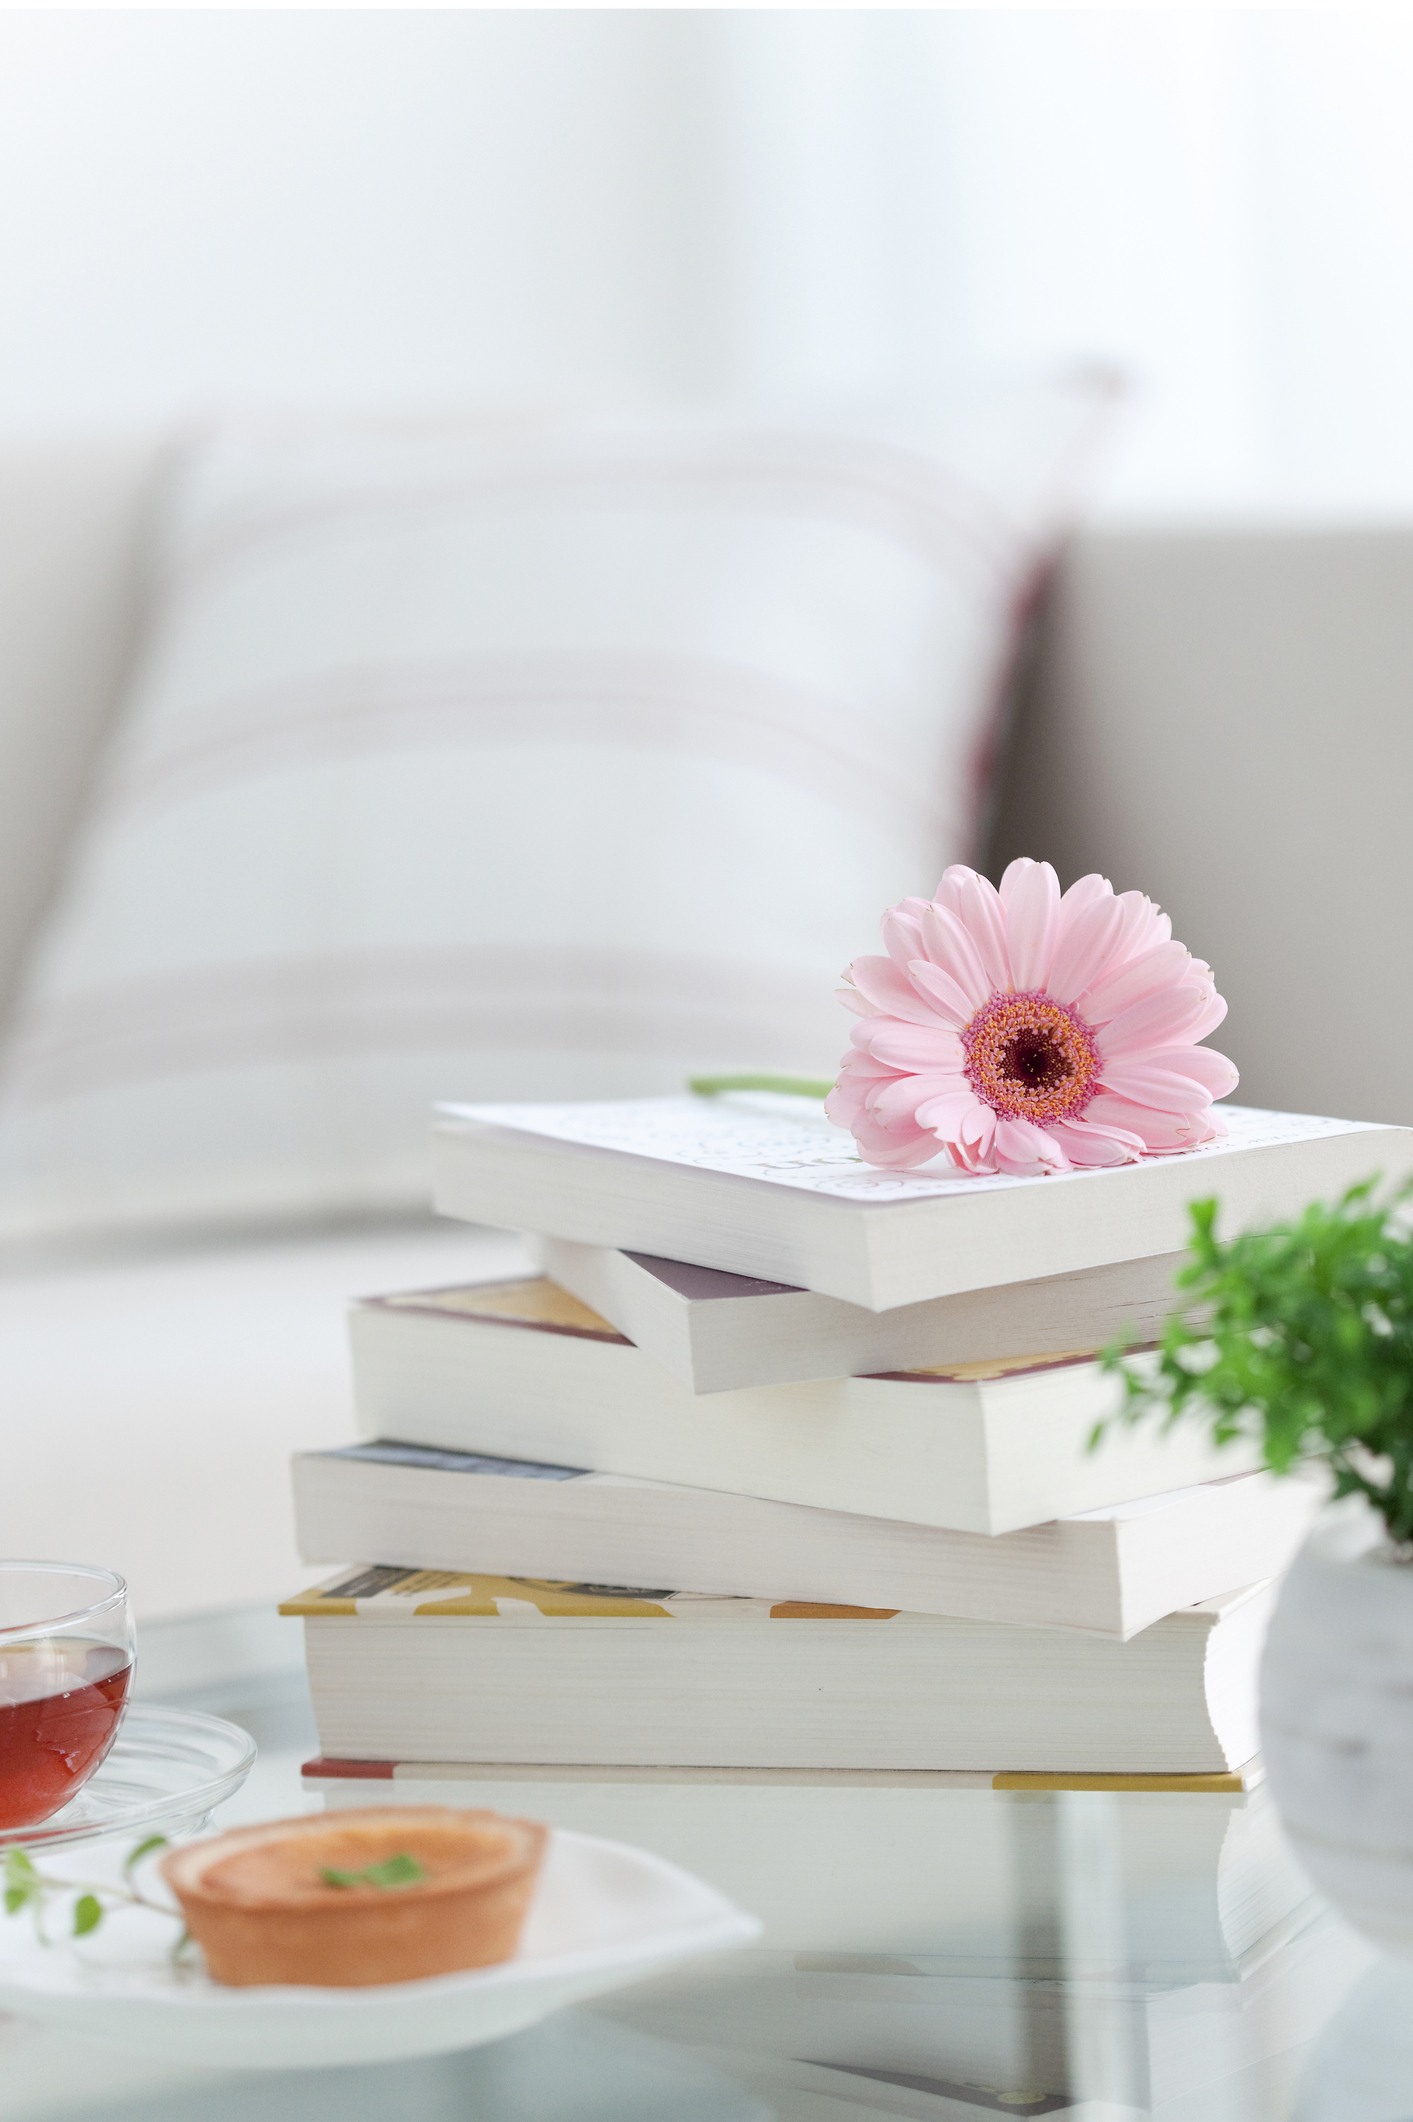 5 Best Classic Fiction Book Collections For Your Coffee Table